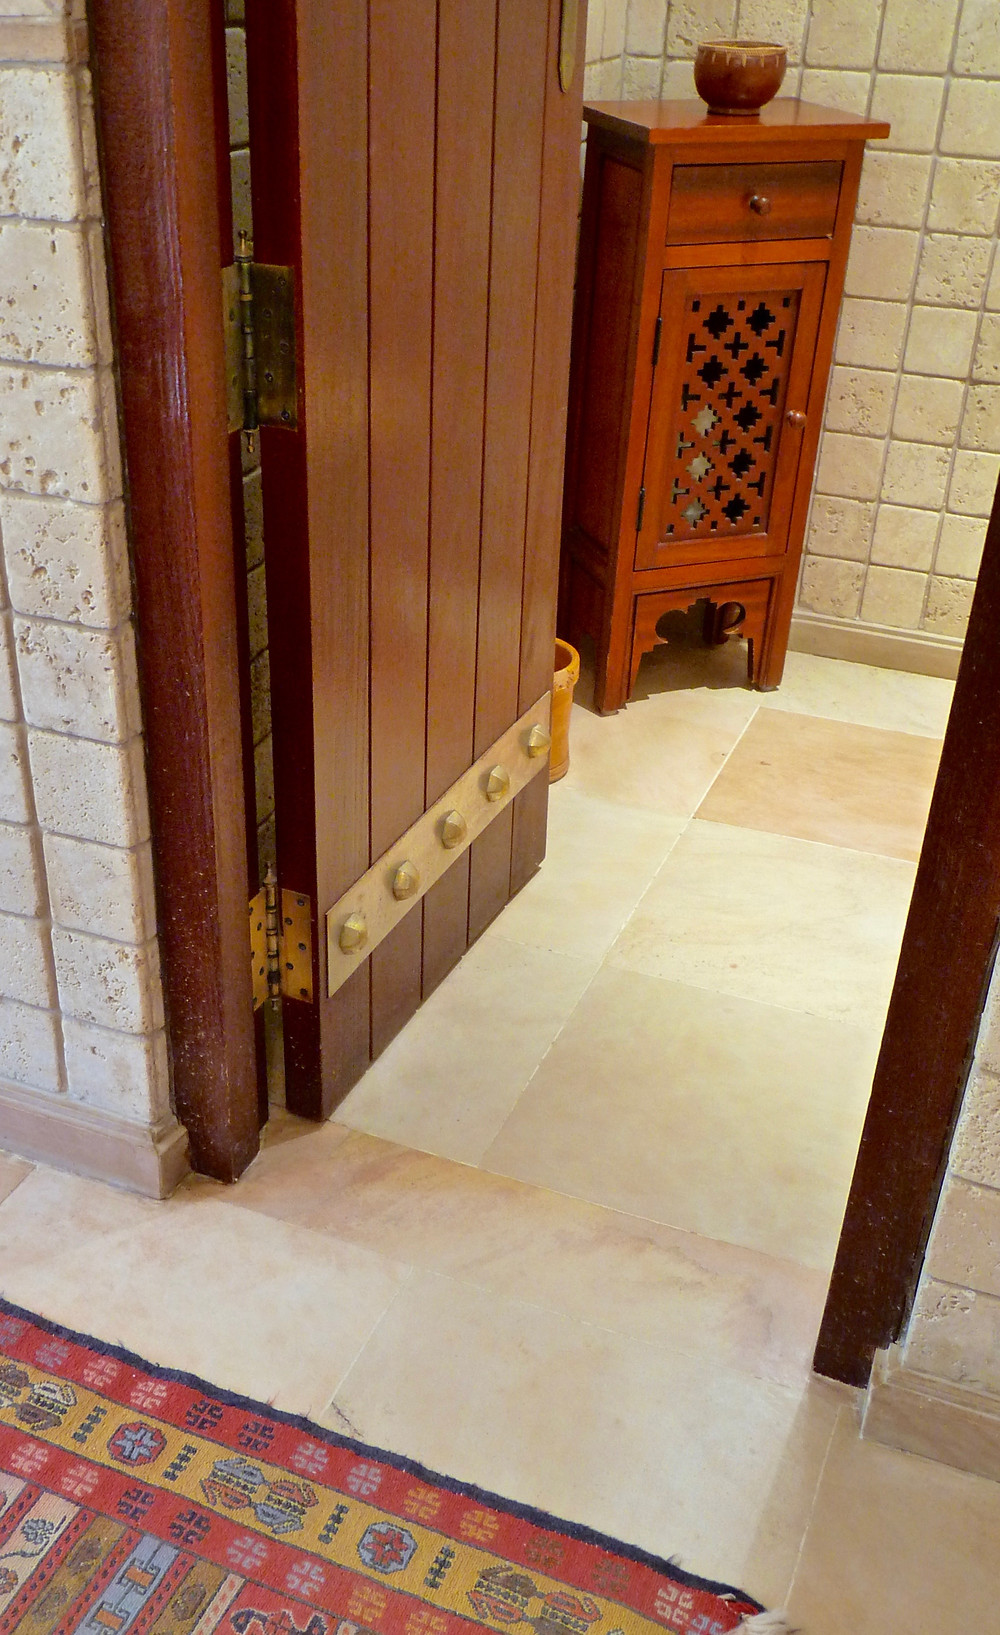 Bathroom at Al Maha,Resort, Dubai